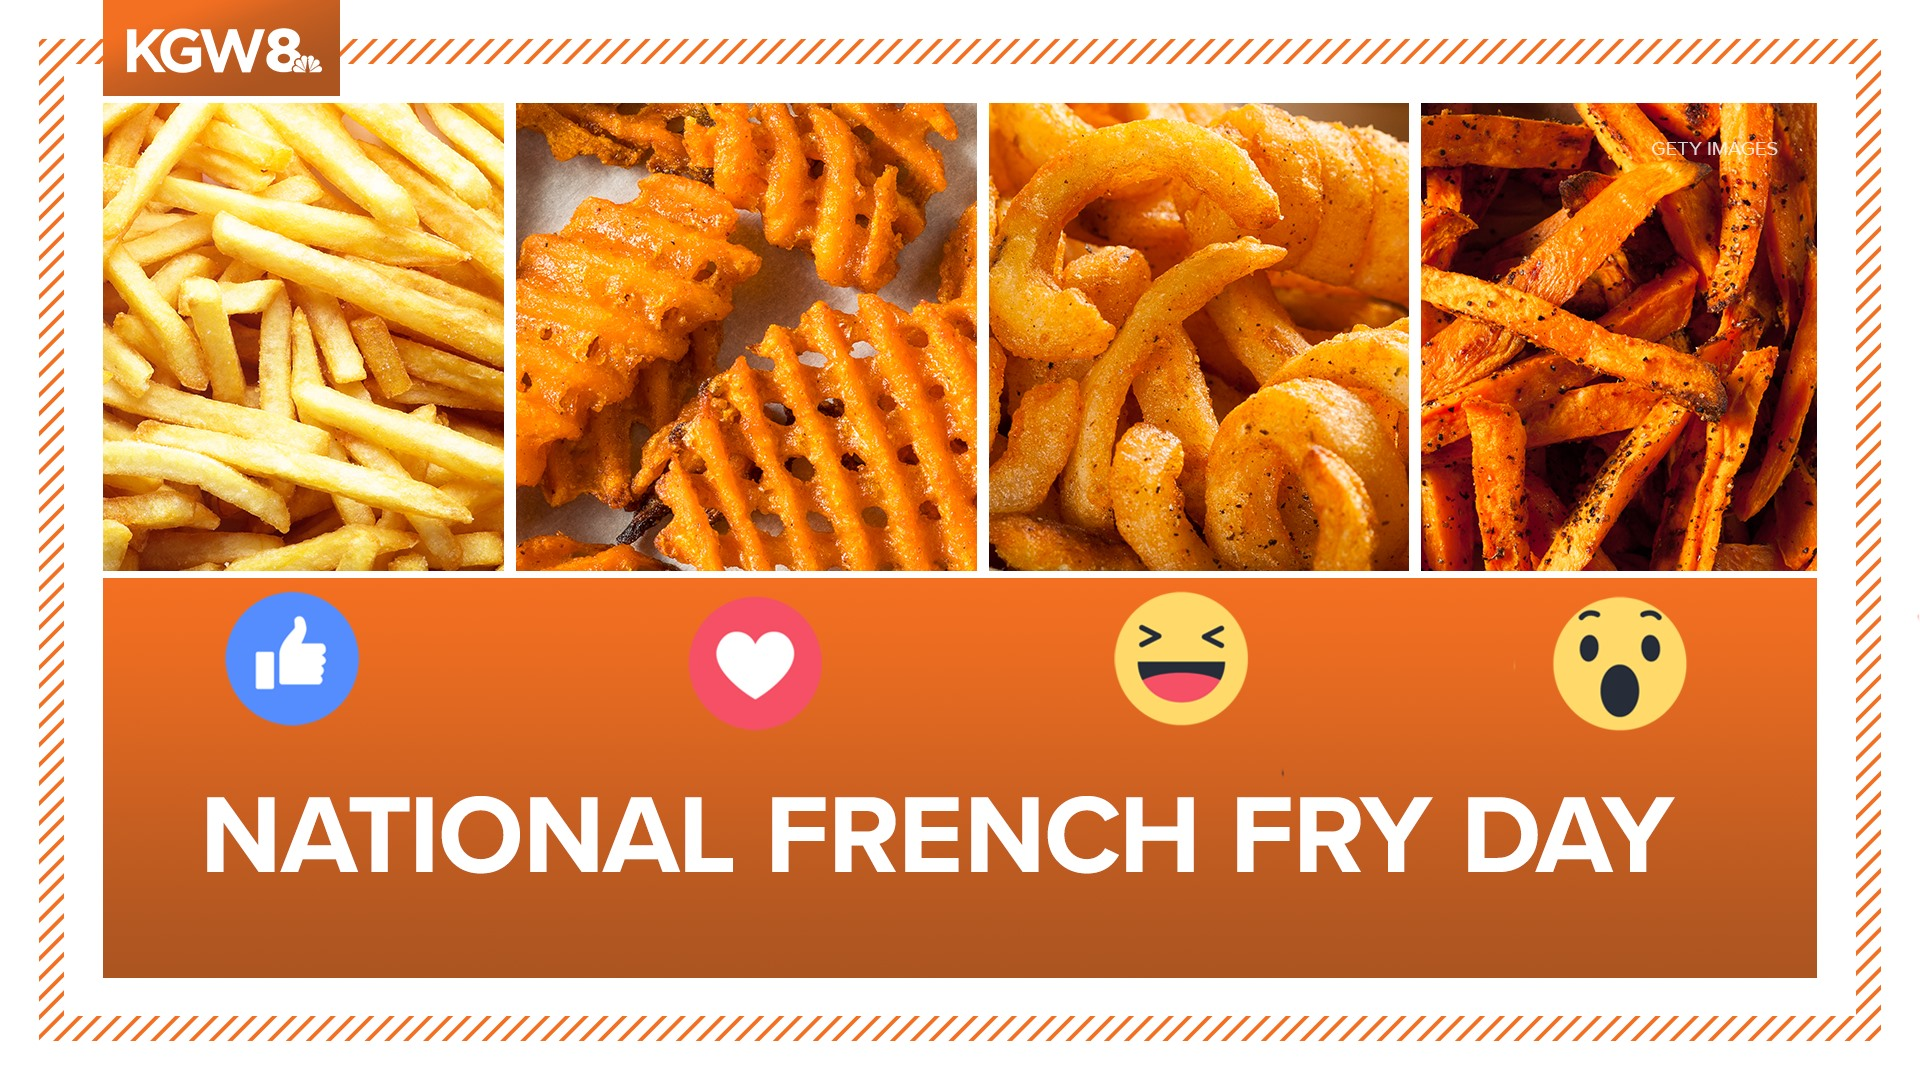 KGW TV   National French Fry Day Whats your favorite fry Facebook 1920x1080